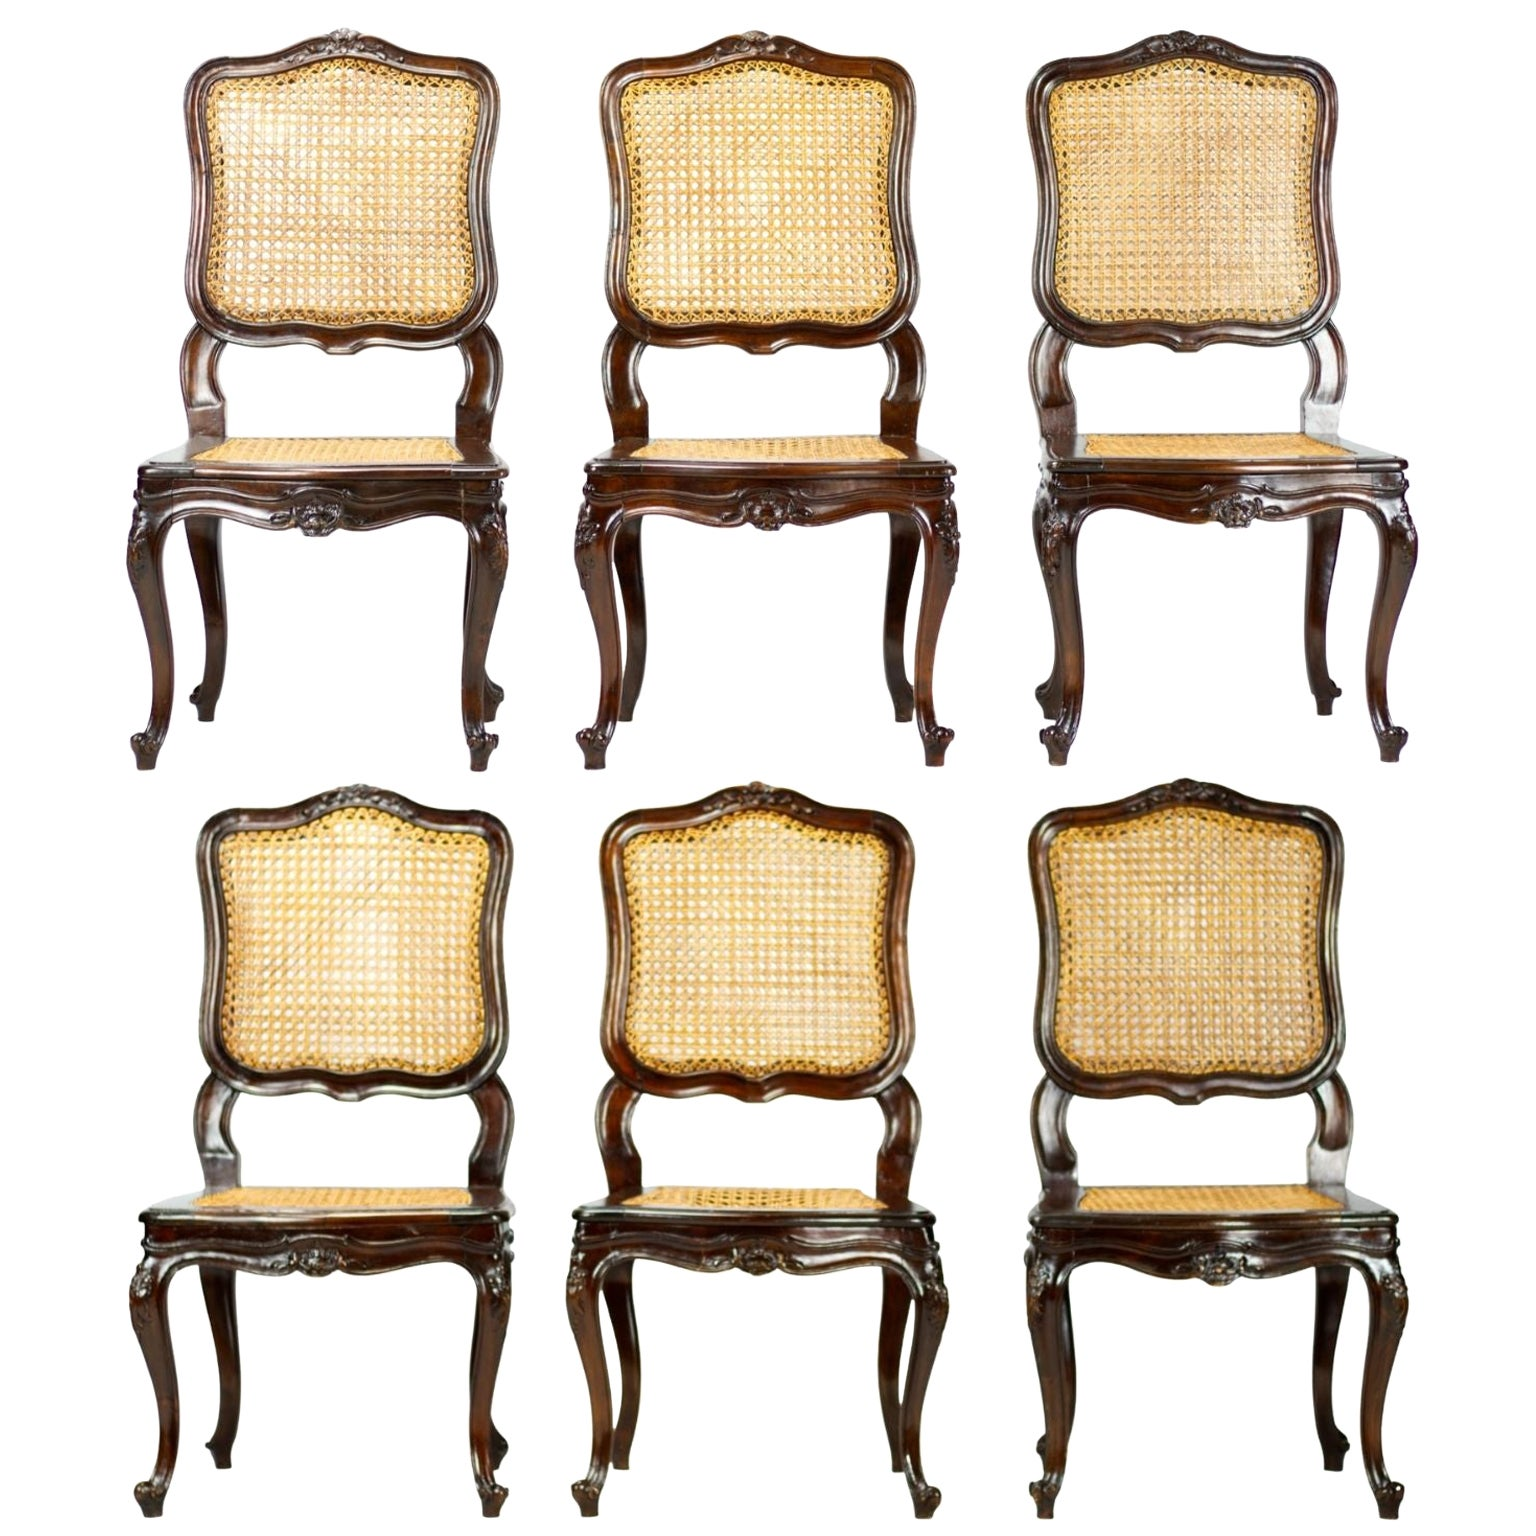 Set of Six French 19th Century Louis XV Style Caned Dining Chairs in Walnut